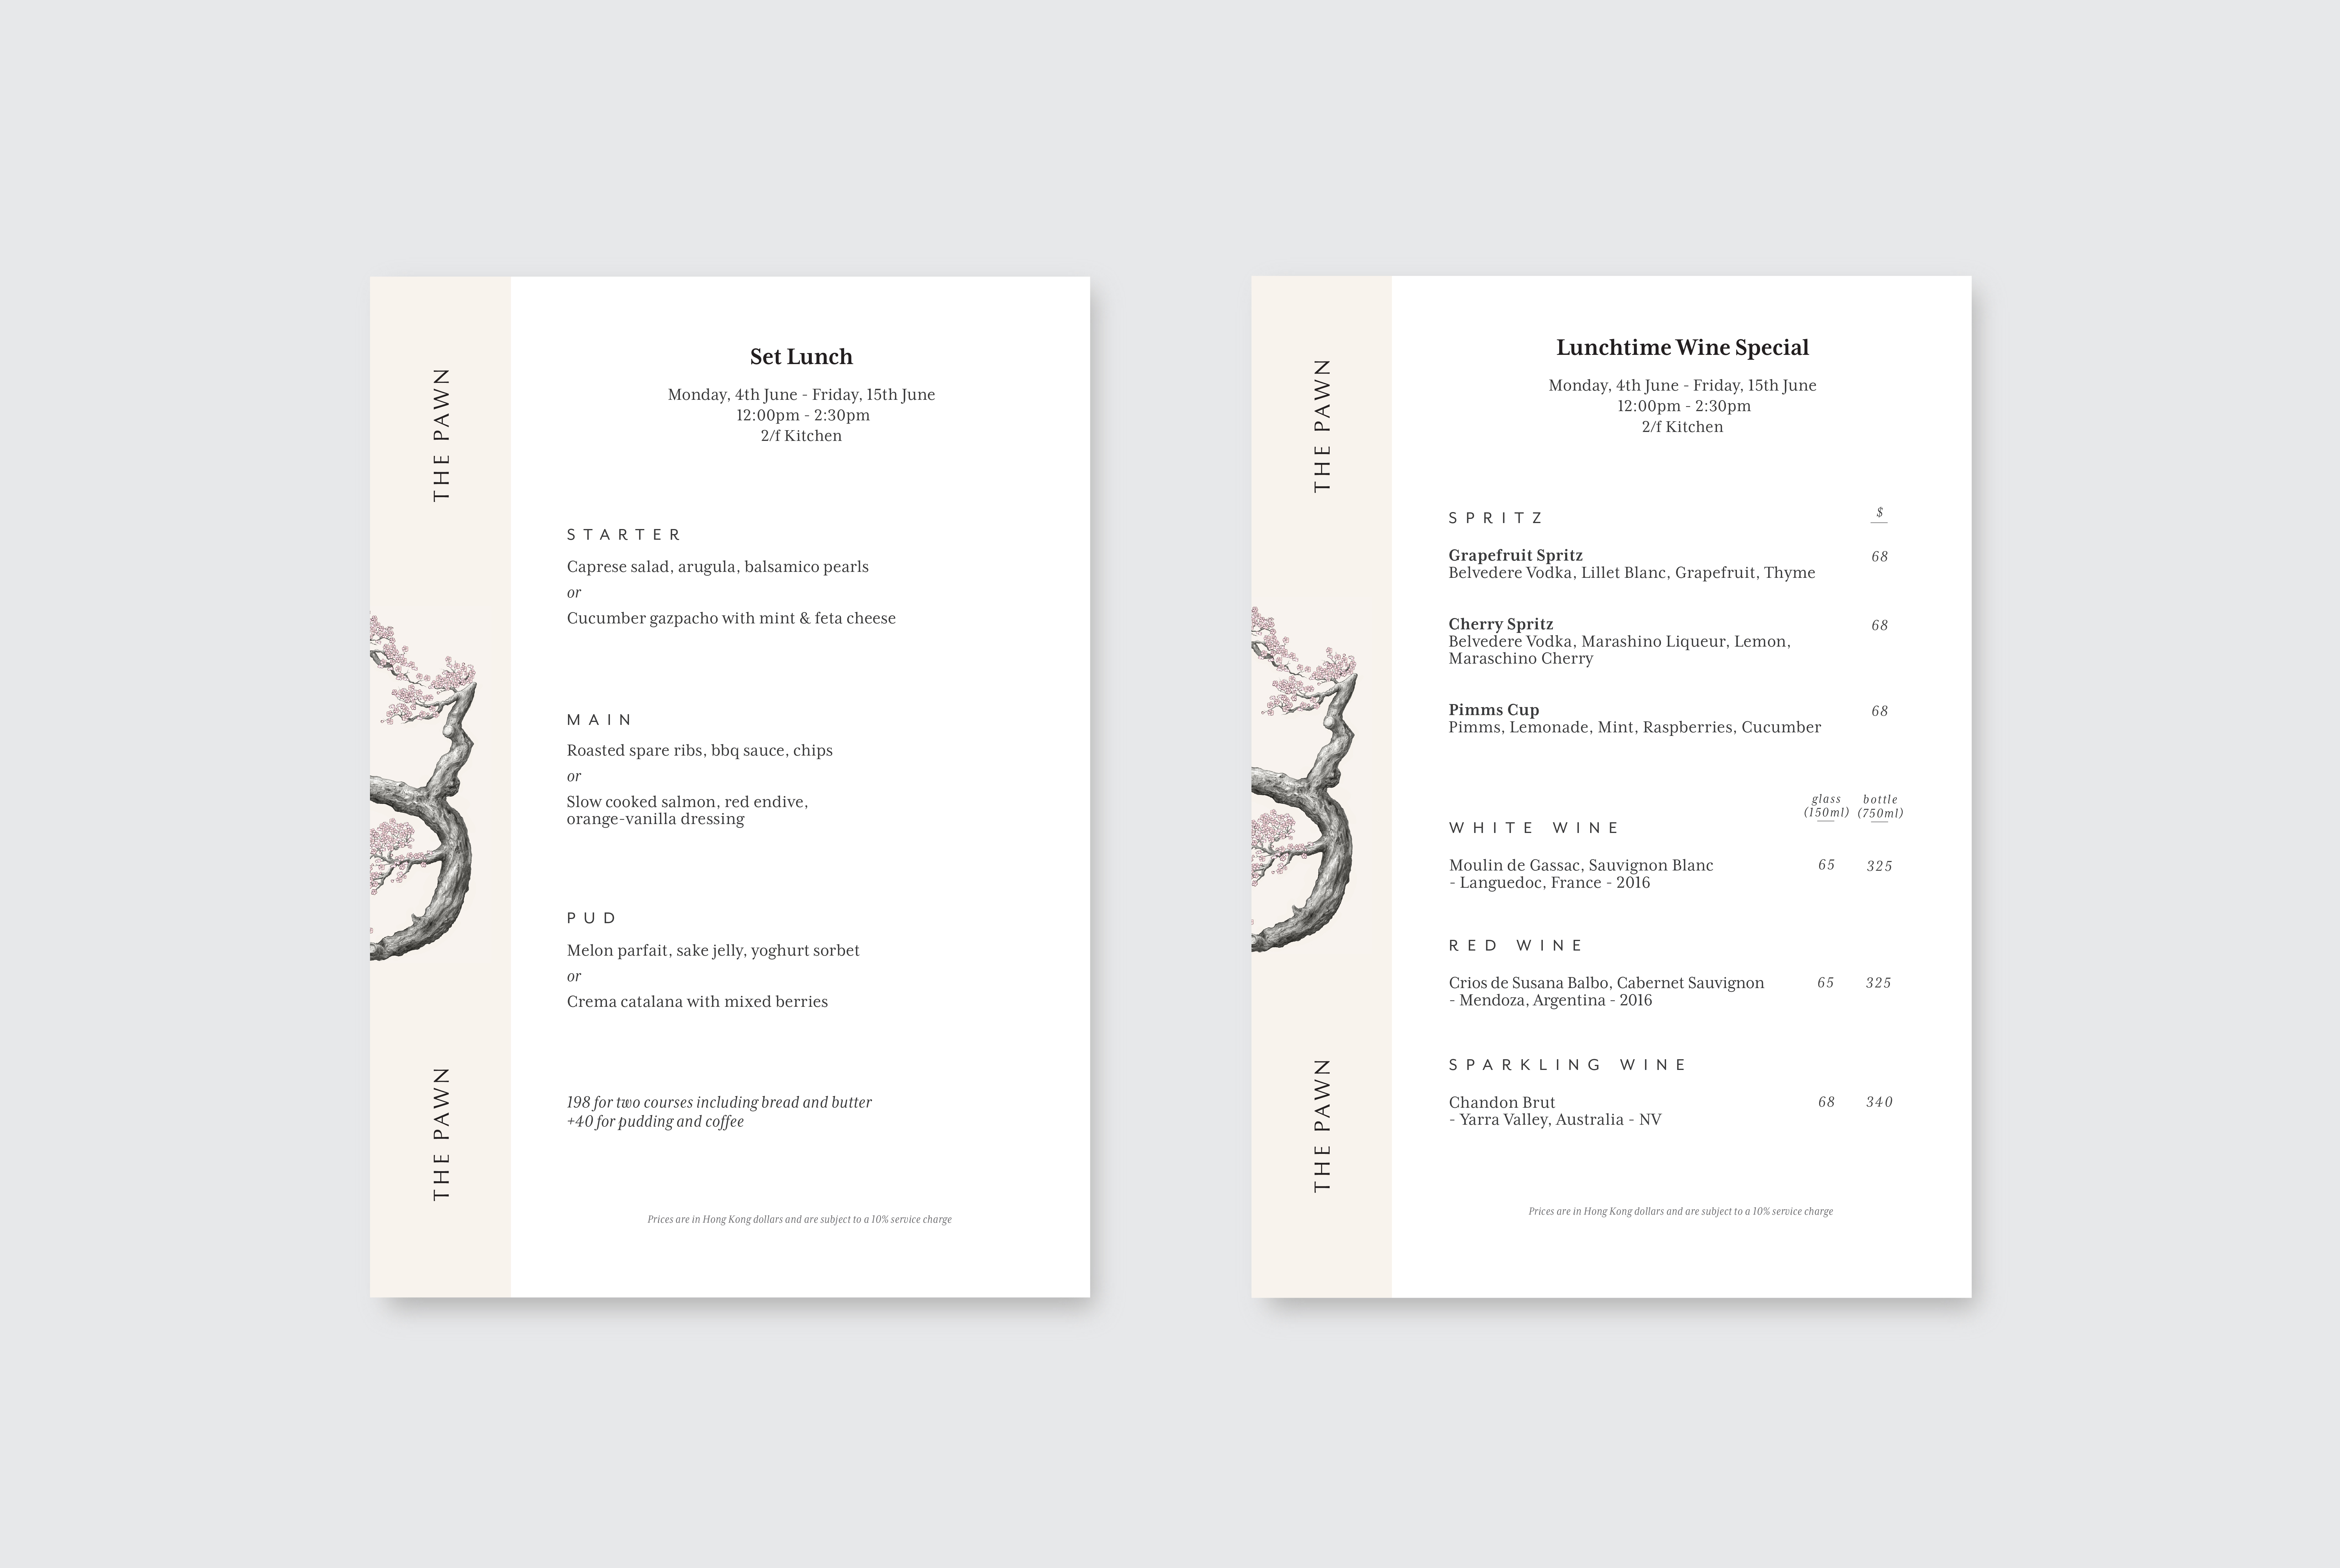 Menu Design by Ron Wan. A La Carte Dining at The Pawn's 2/F Tom Aikens Kitchen in Wan Chai, Hong Kong